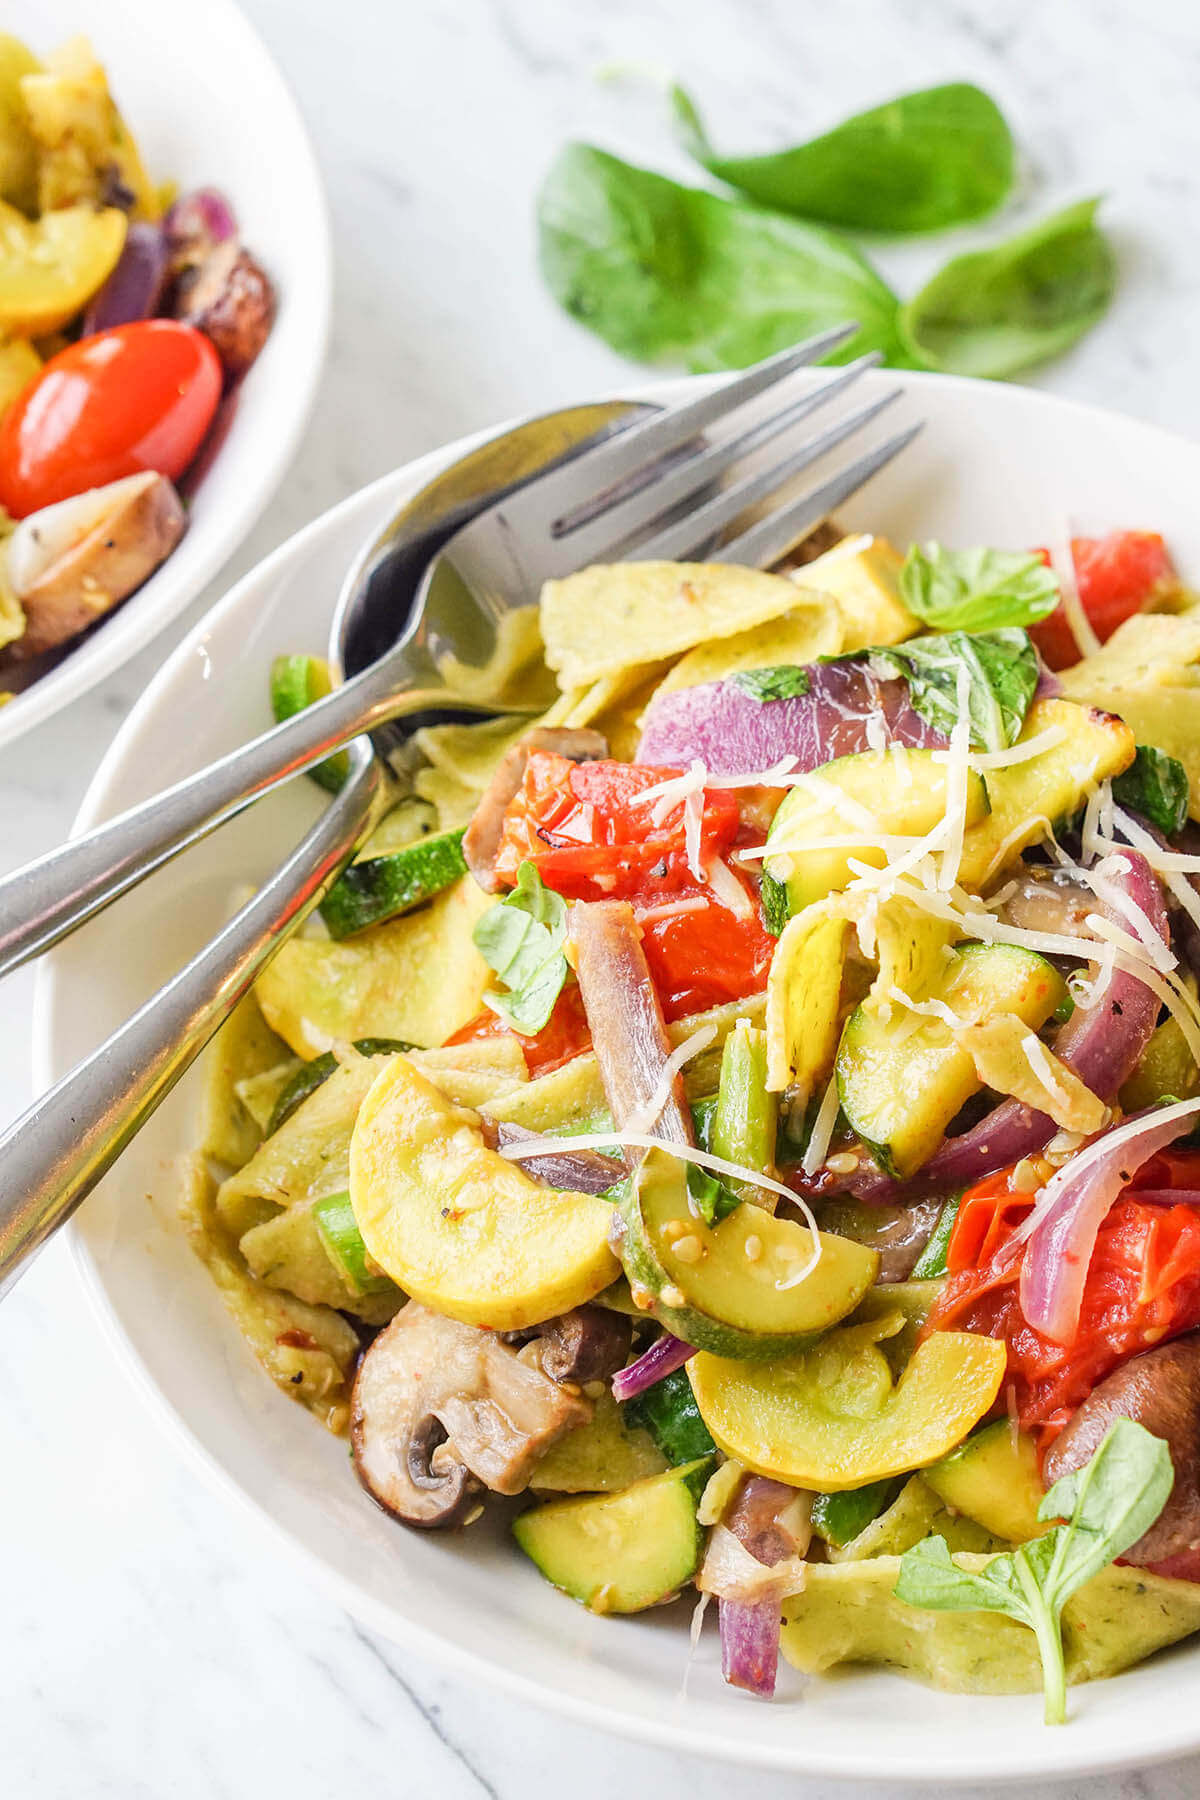 Vegetable Pasta Primavera in white bowl with fork.